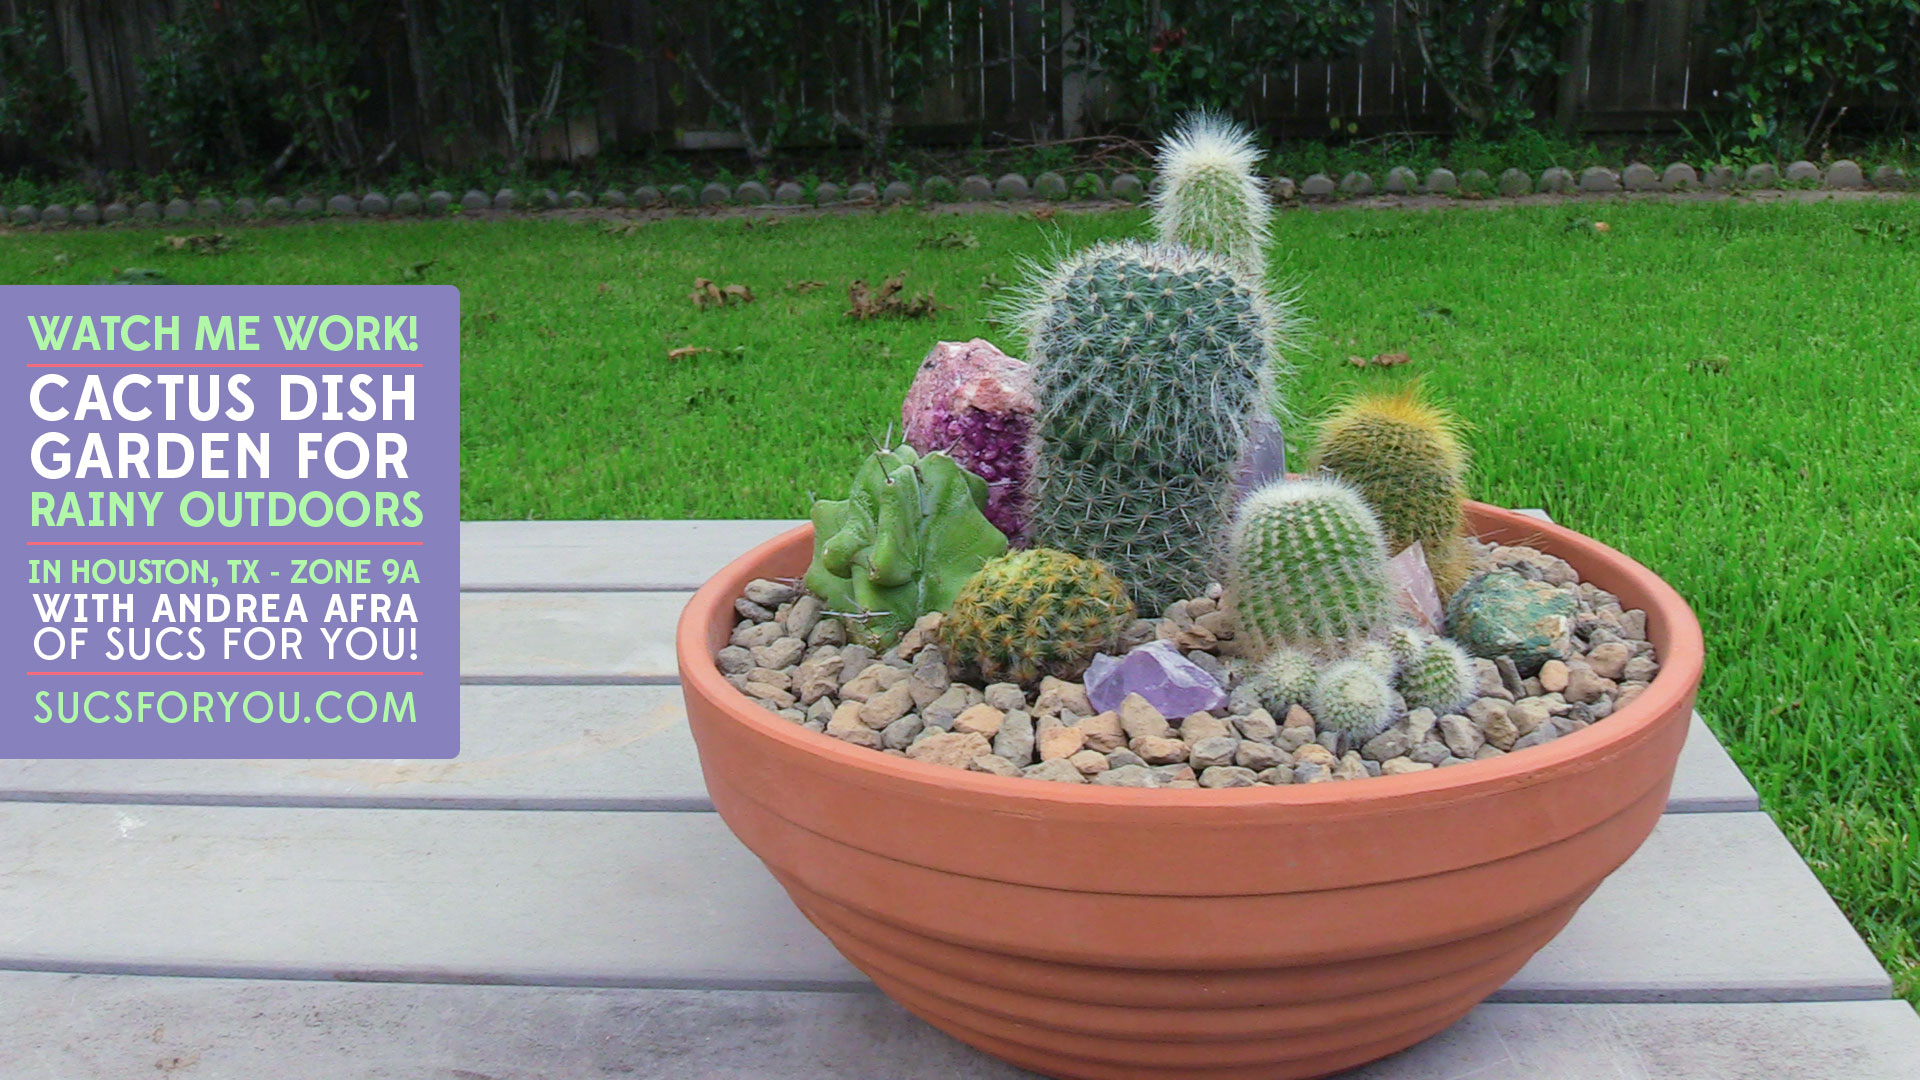 Cactus dish garden for rainy outdoors